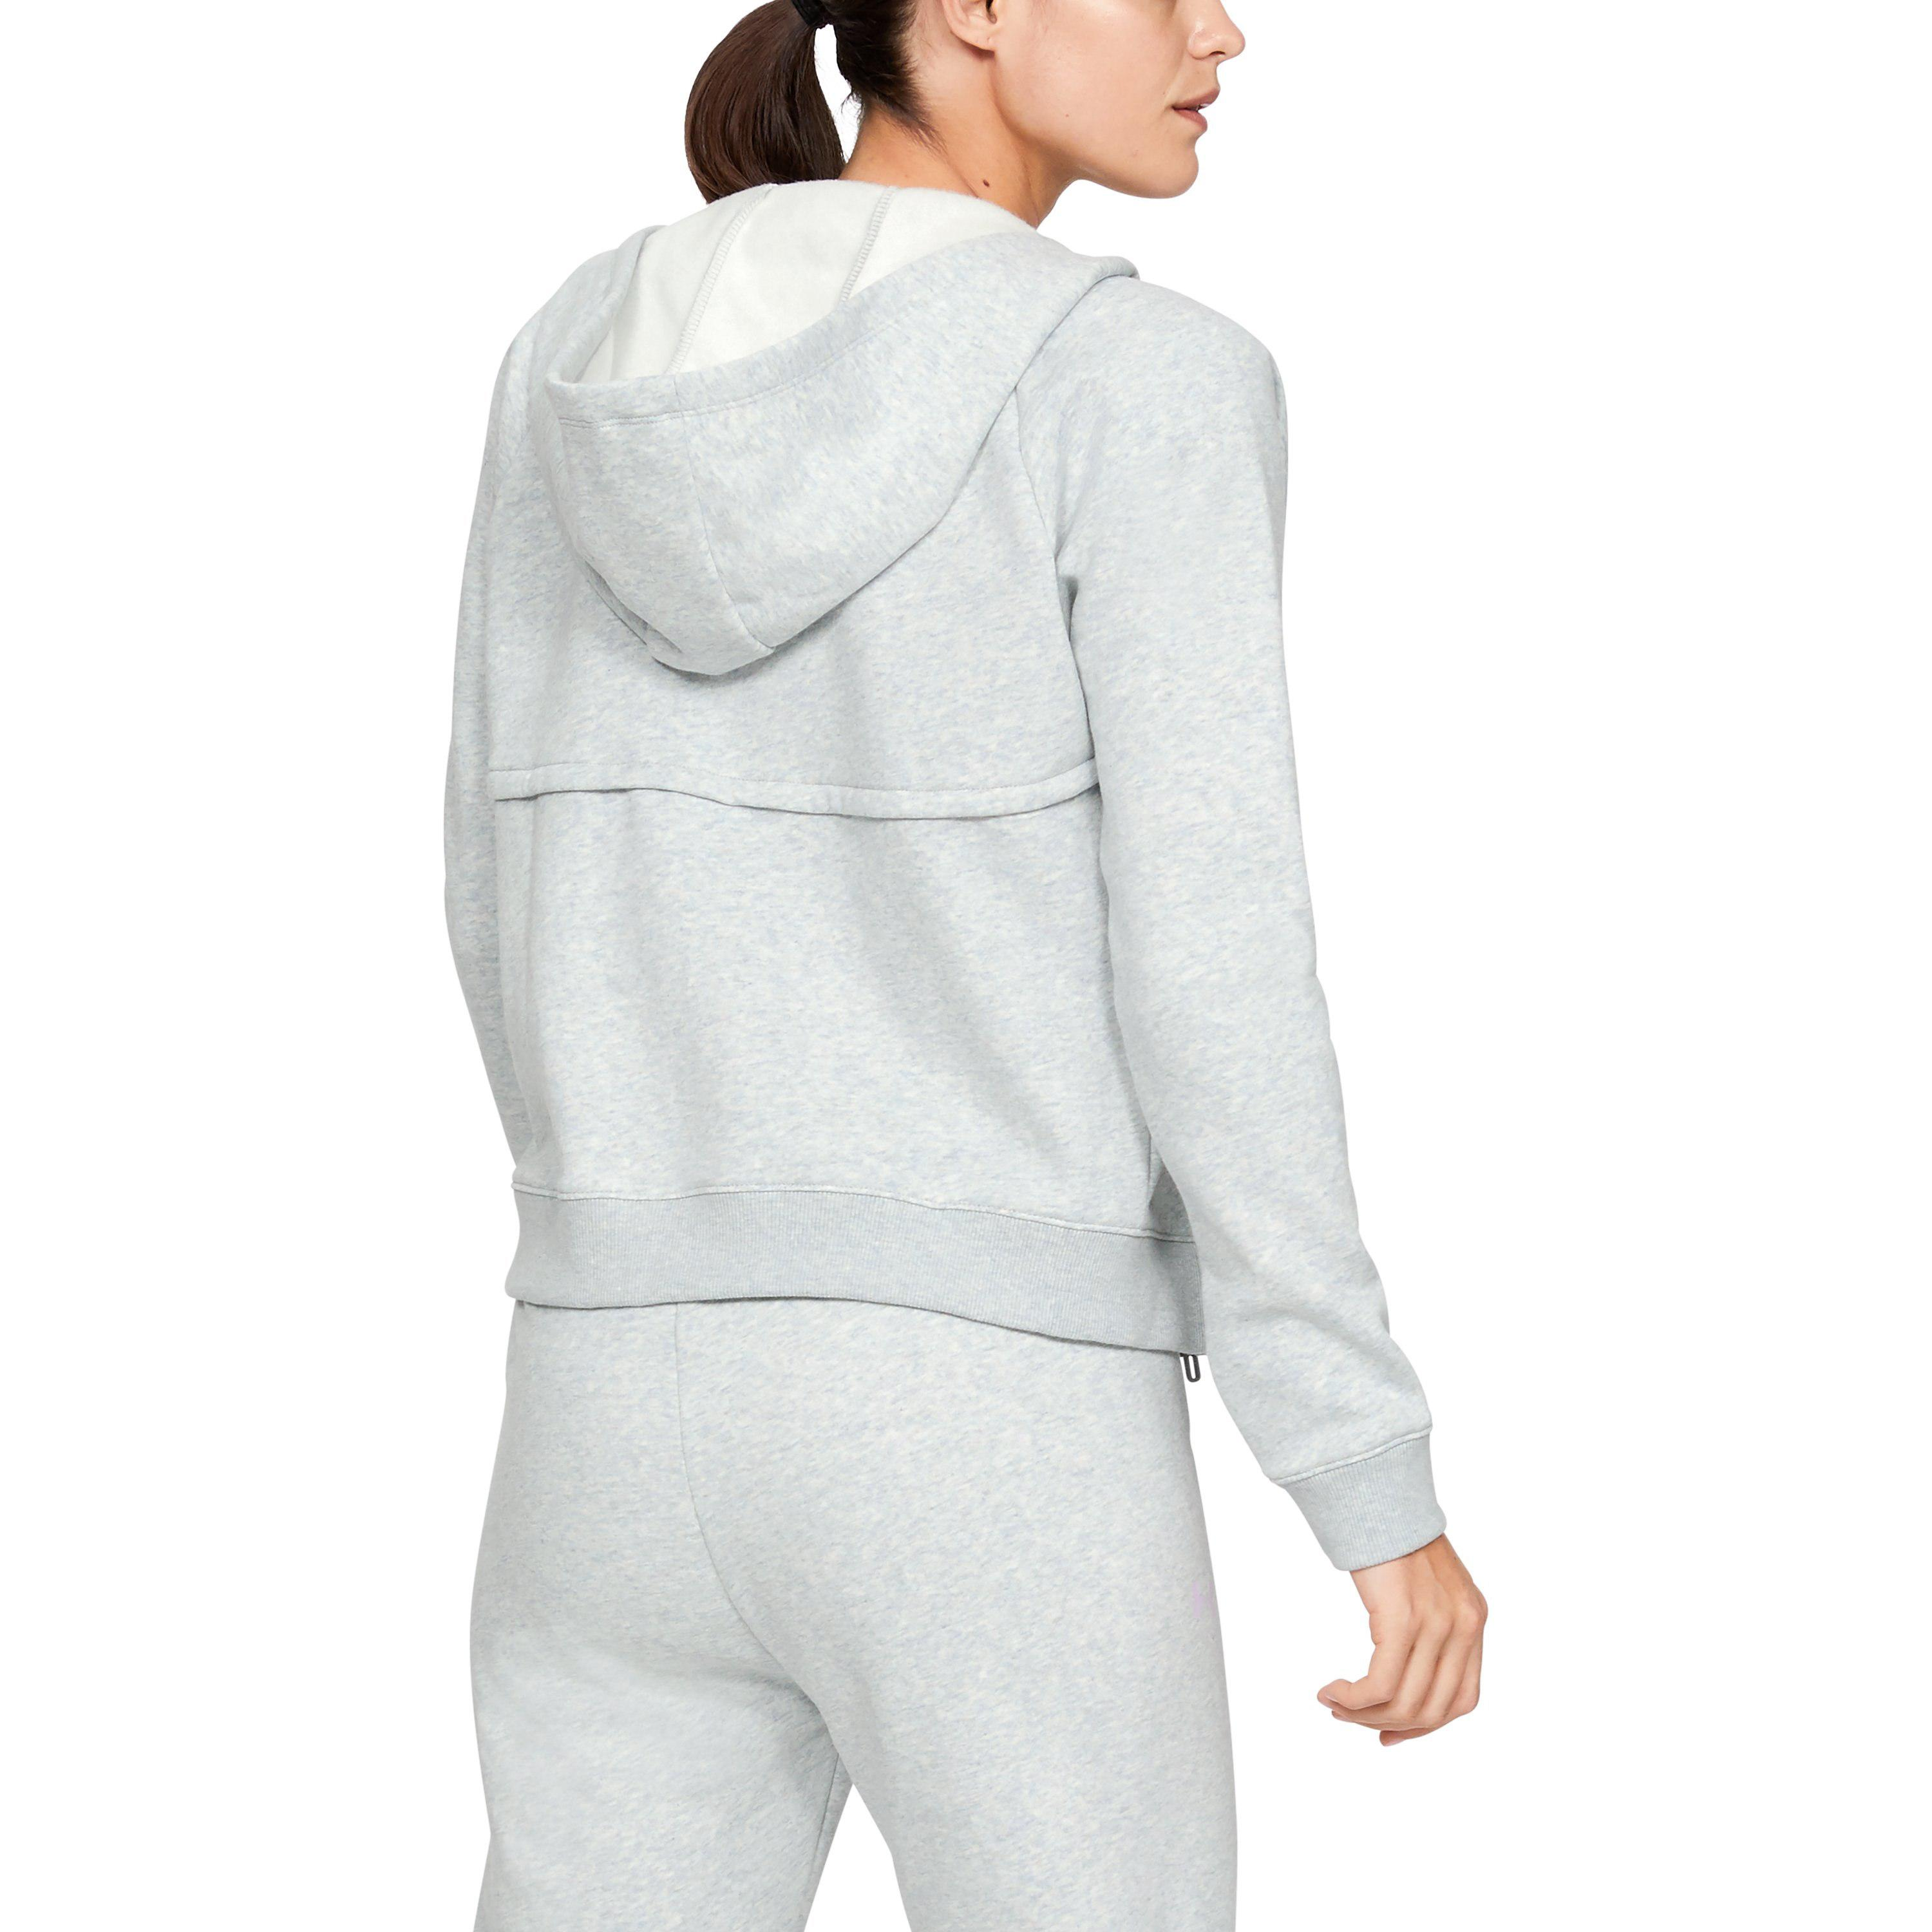 2ec5d88cf4 Lyst - Under Armour Women's Ua Rival Fleece Crop in Gray